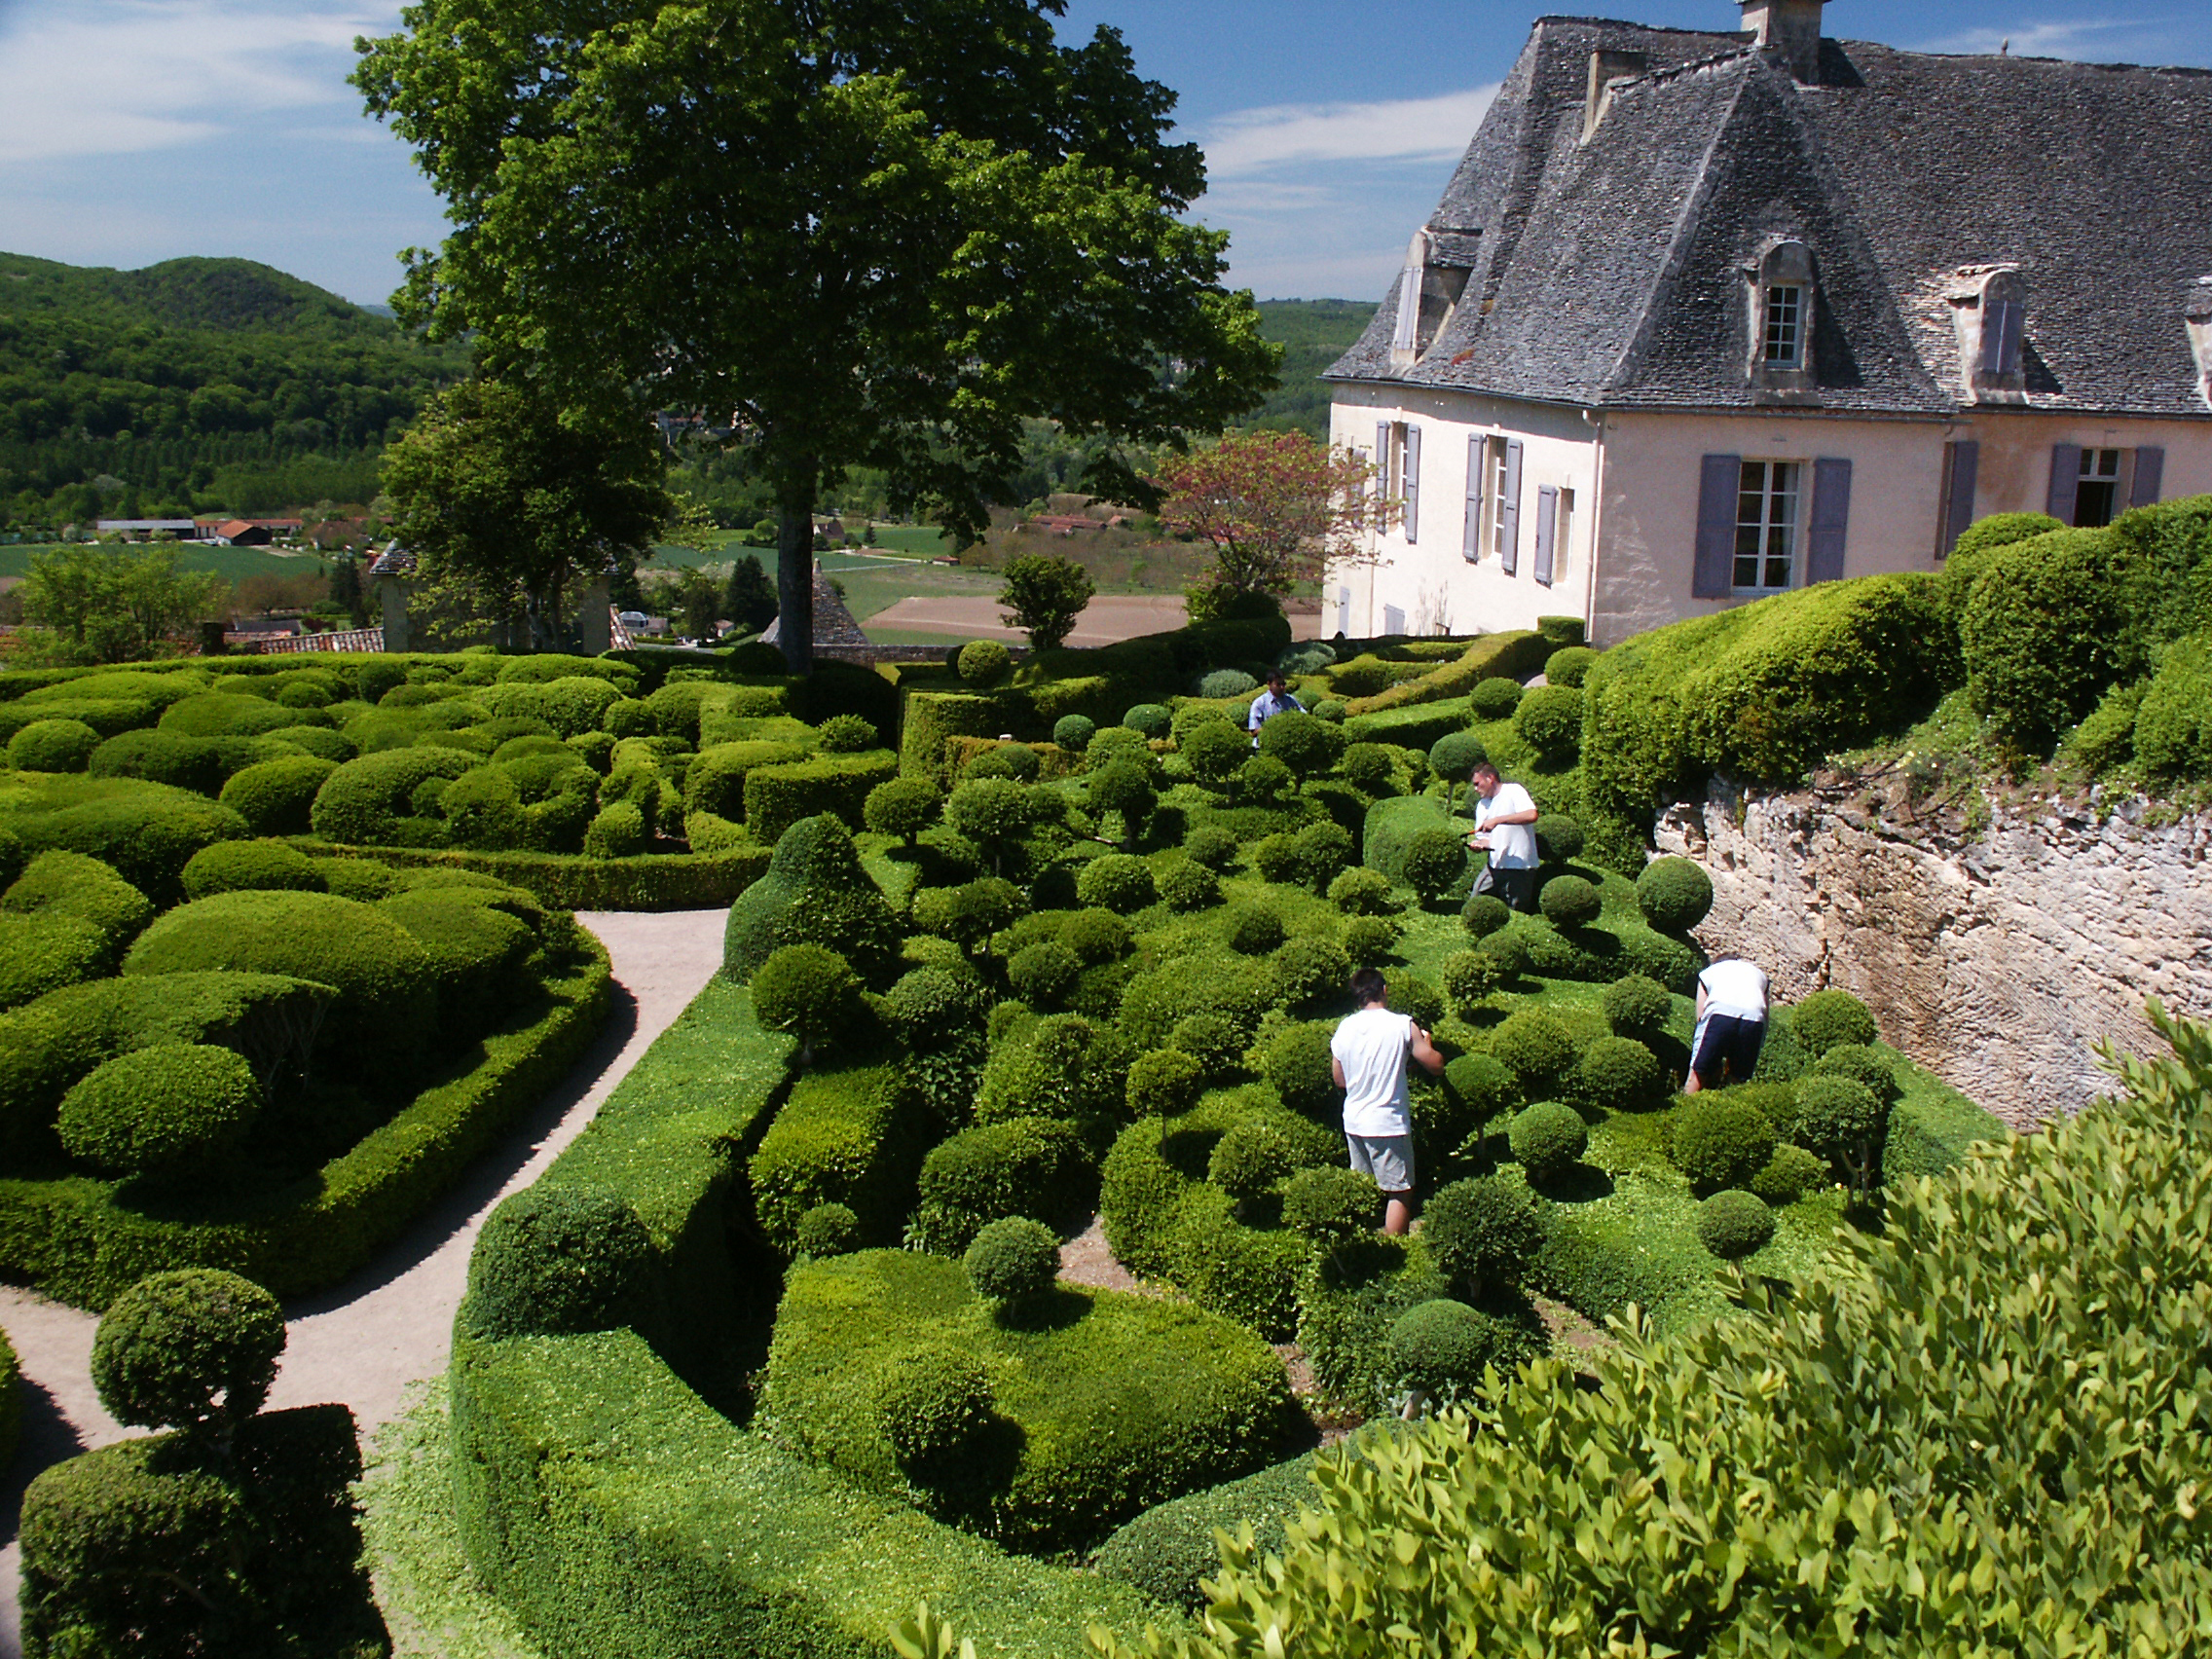 Photo of Gardens at Marqueyssac, Dordogne, by John Hulsey